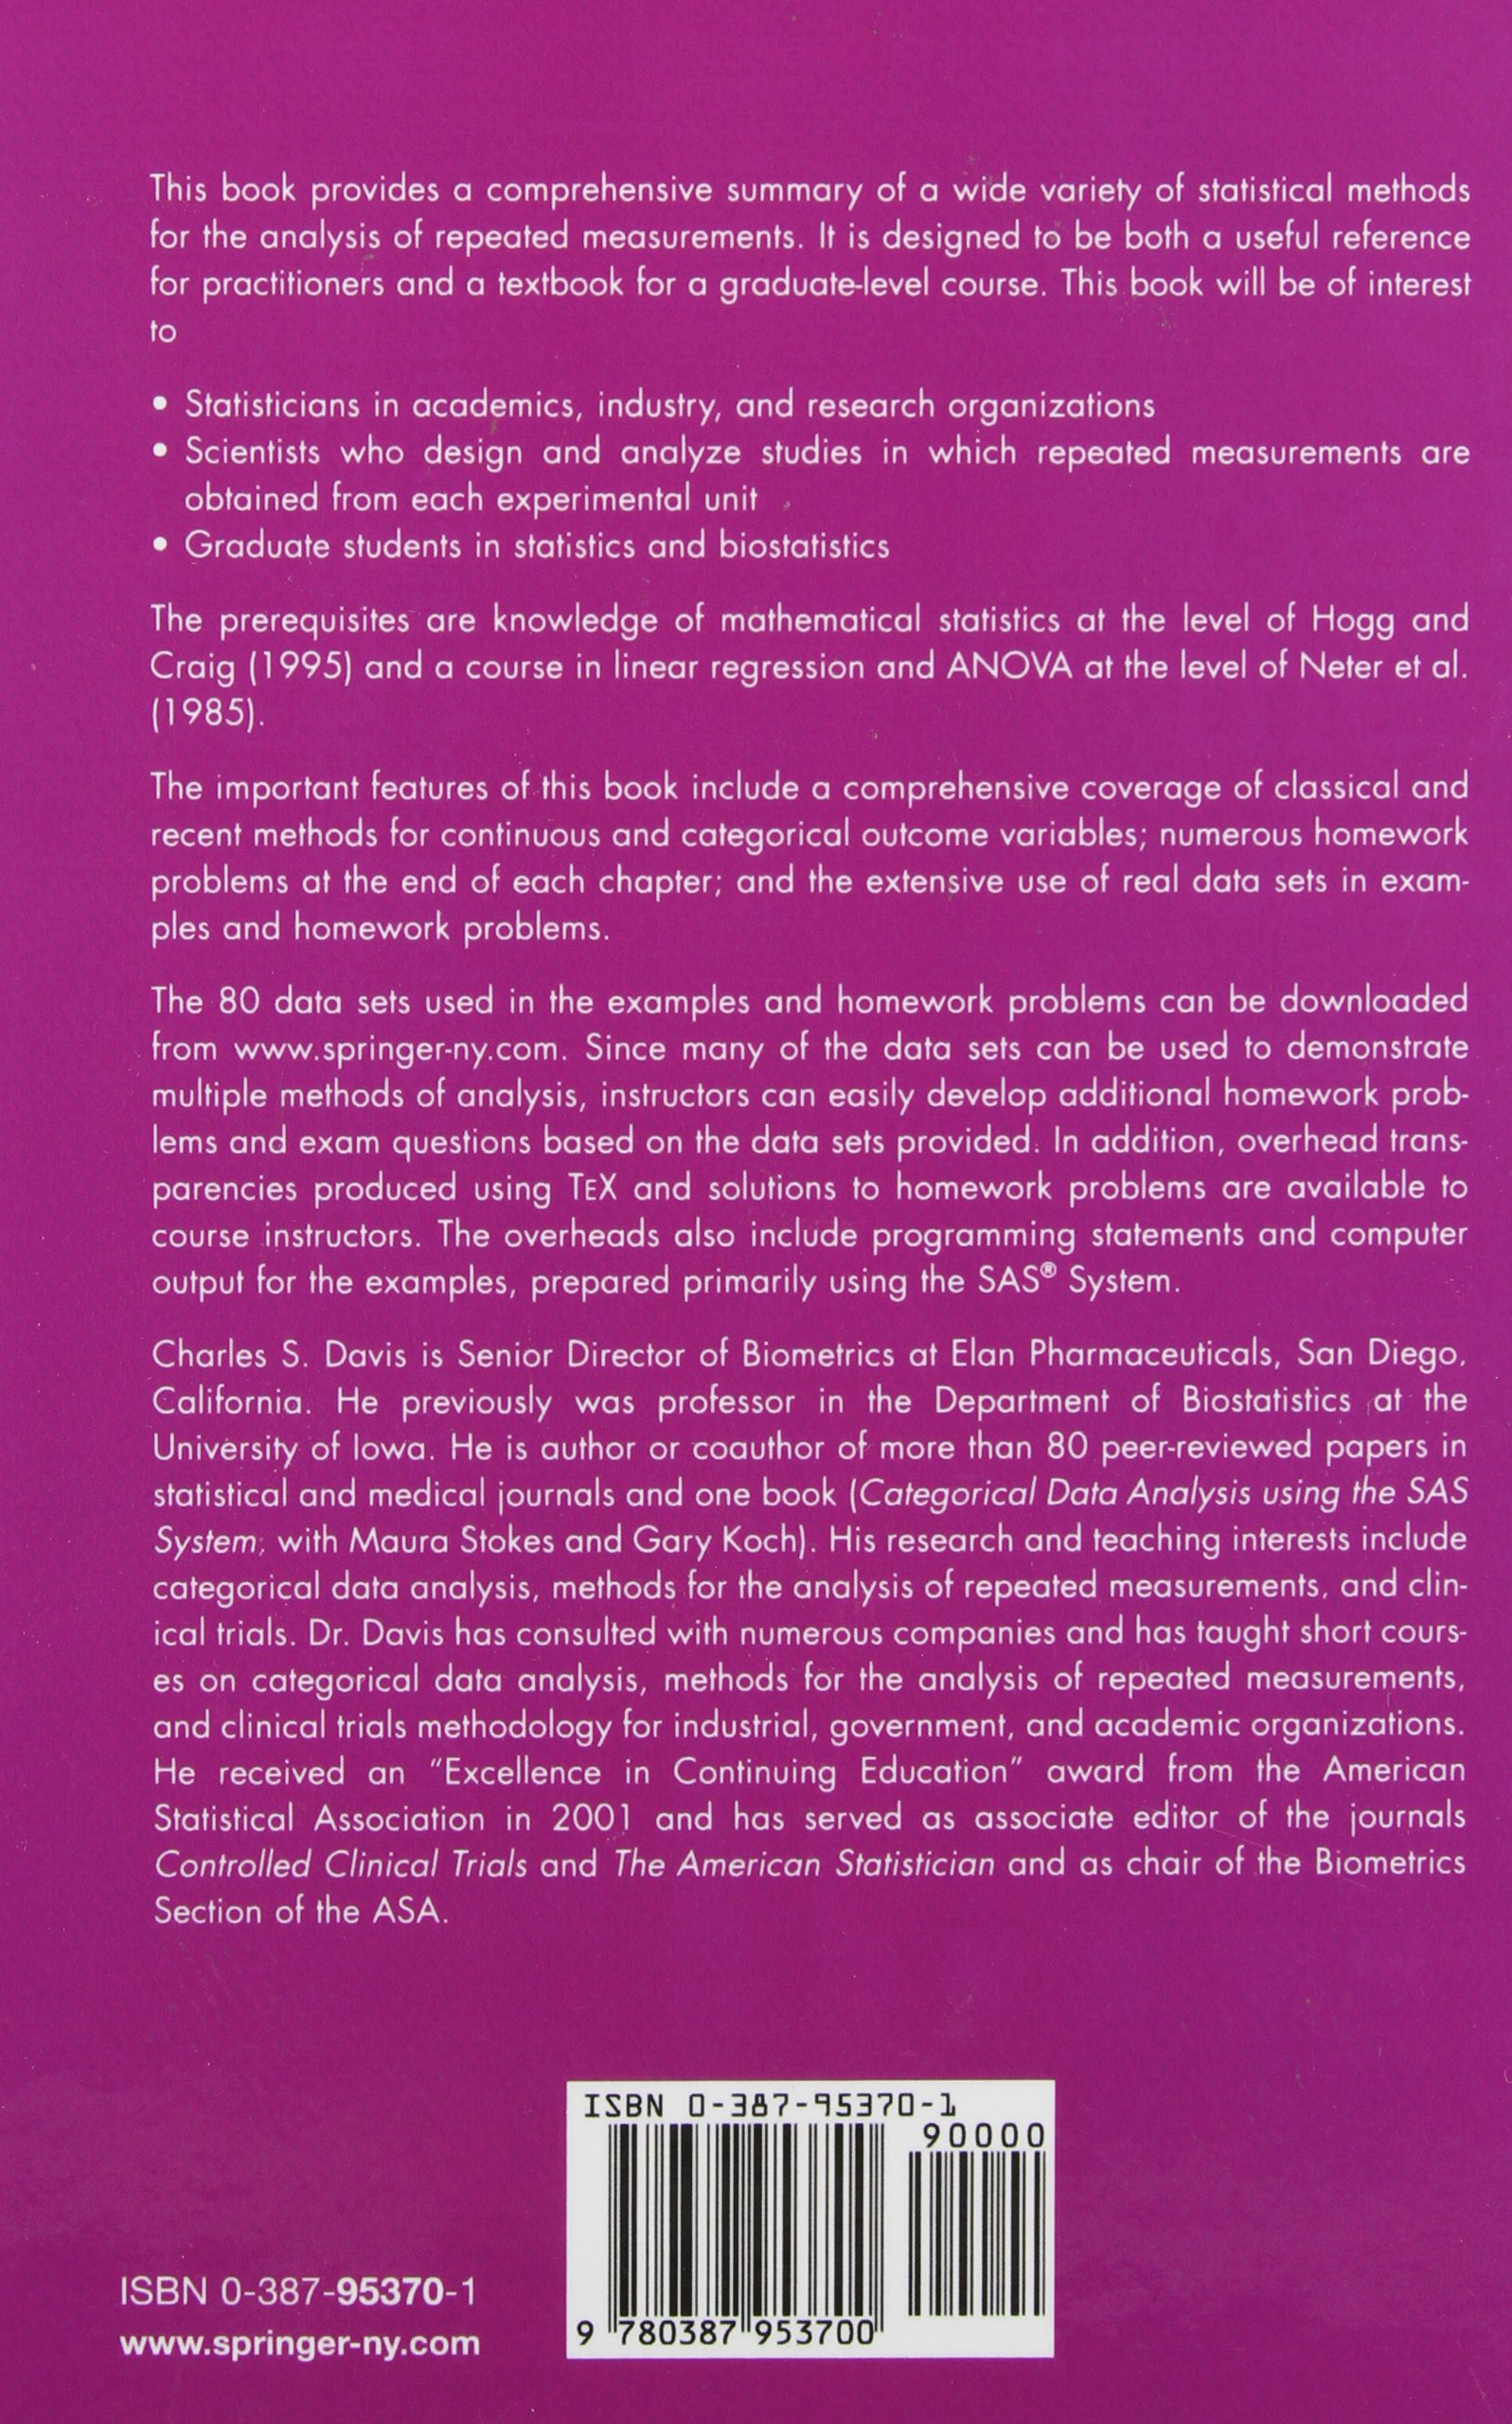 Buy Statistical Methods for the Analysis of Repeated Measurements (Springer  Texts in Statistics) Book Online at Low Prices in India | Statistical  Methods ...